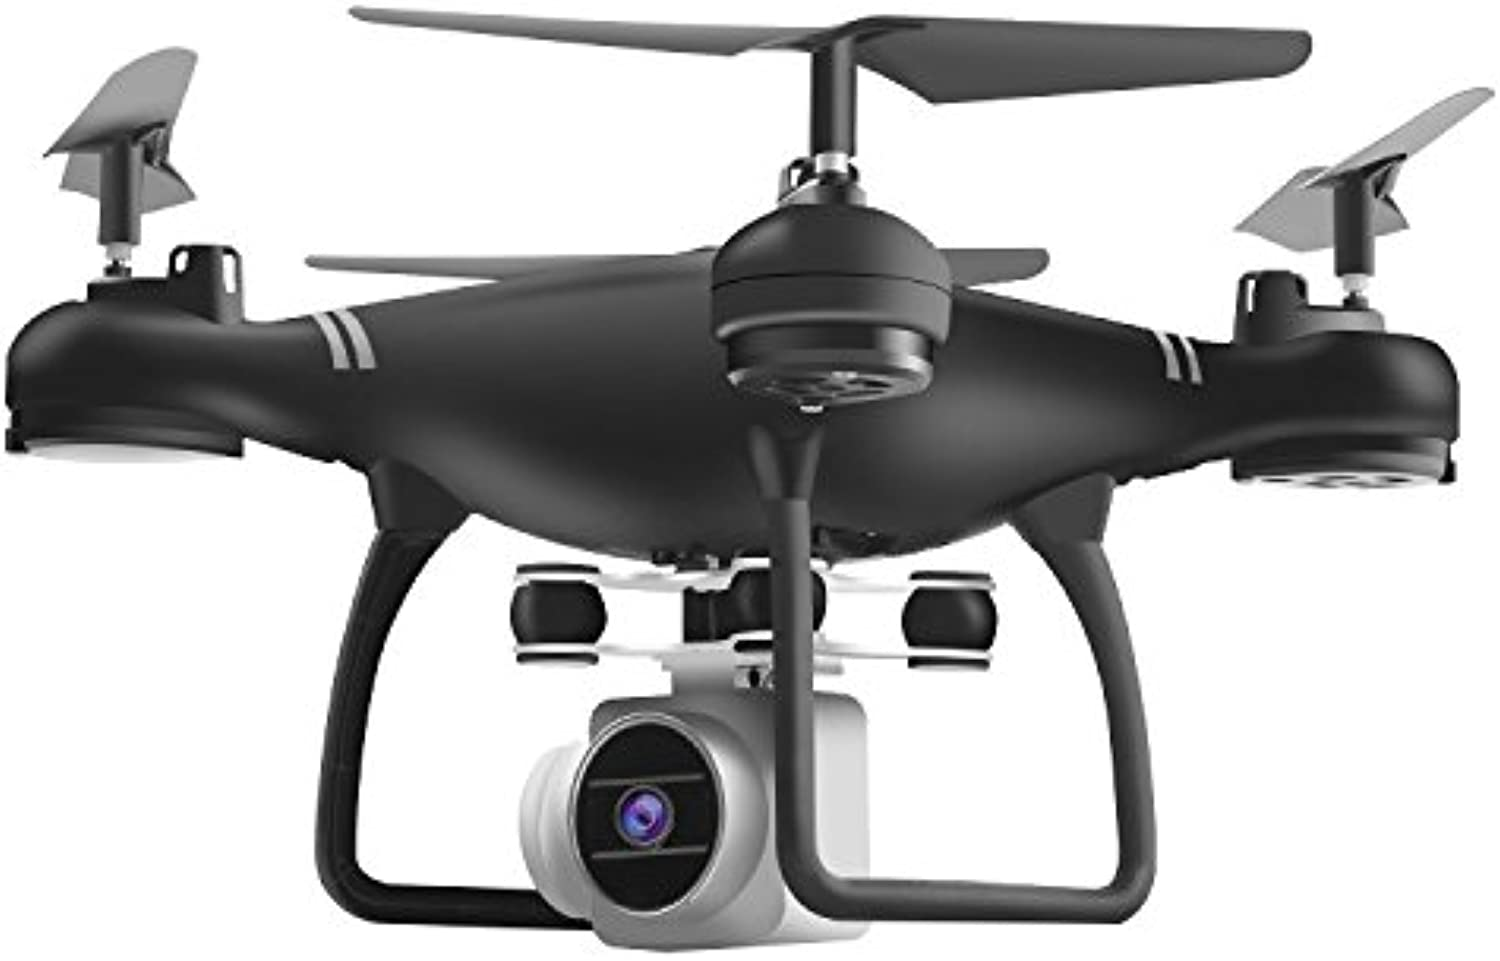 DishyKooker HJ14W WiFi Remote Control Aerial Photography Drone HD Camera 200W Pixel UAV Gift Toy Black